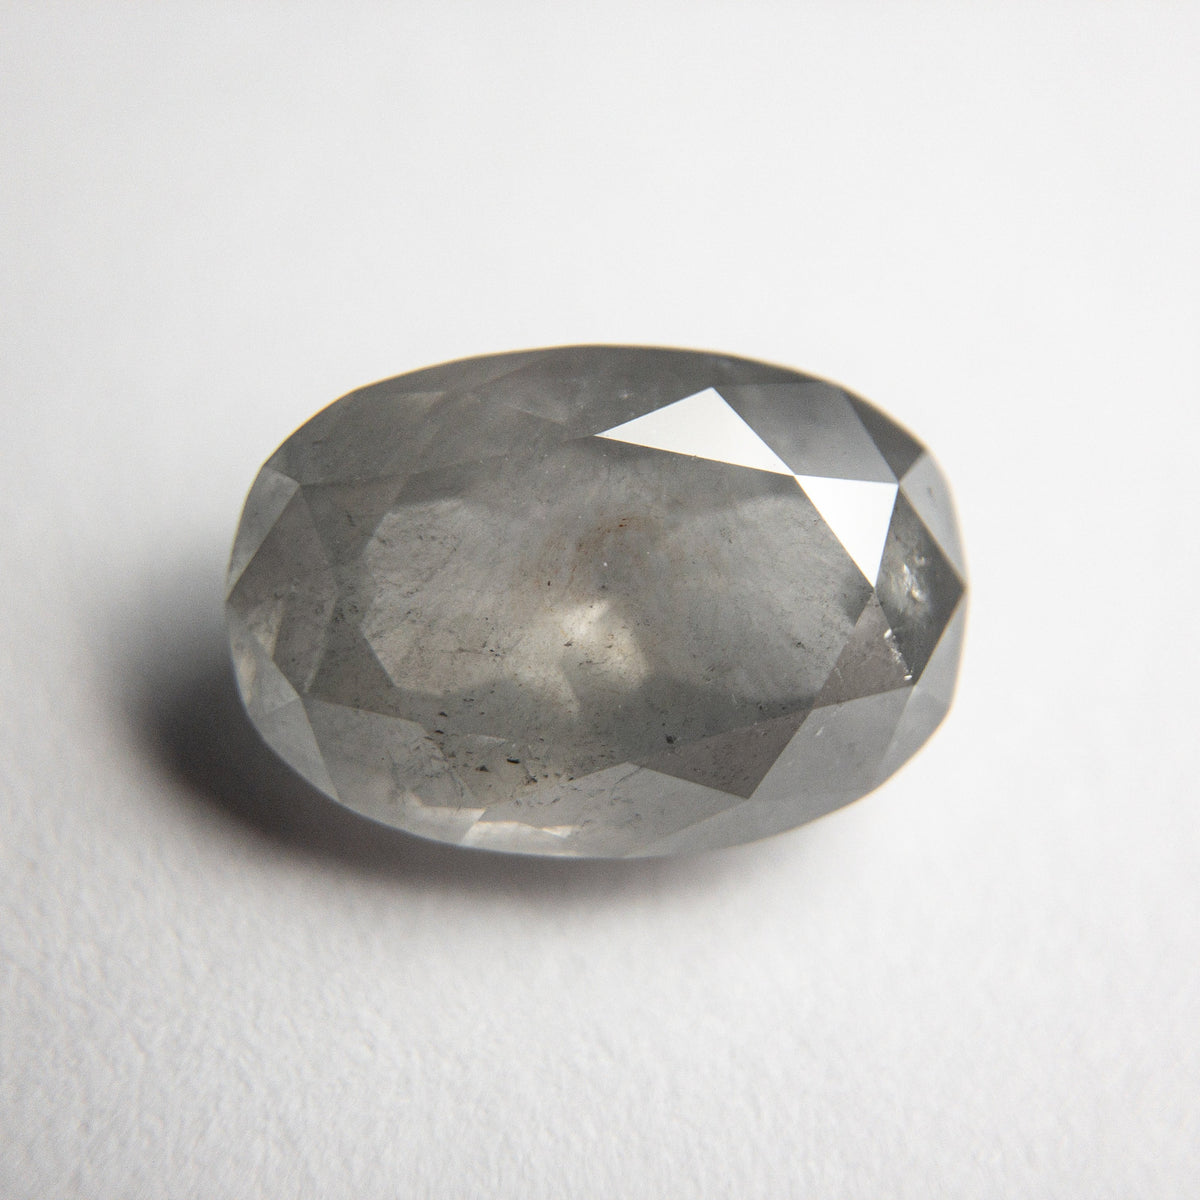 3.18ct 10.64x7.44x4.46mm Oval Double Cut 18768-03